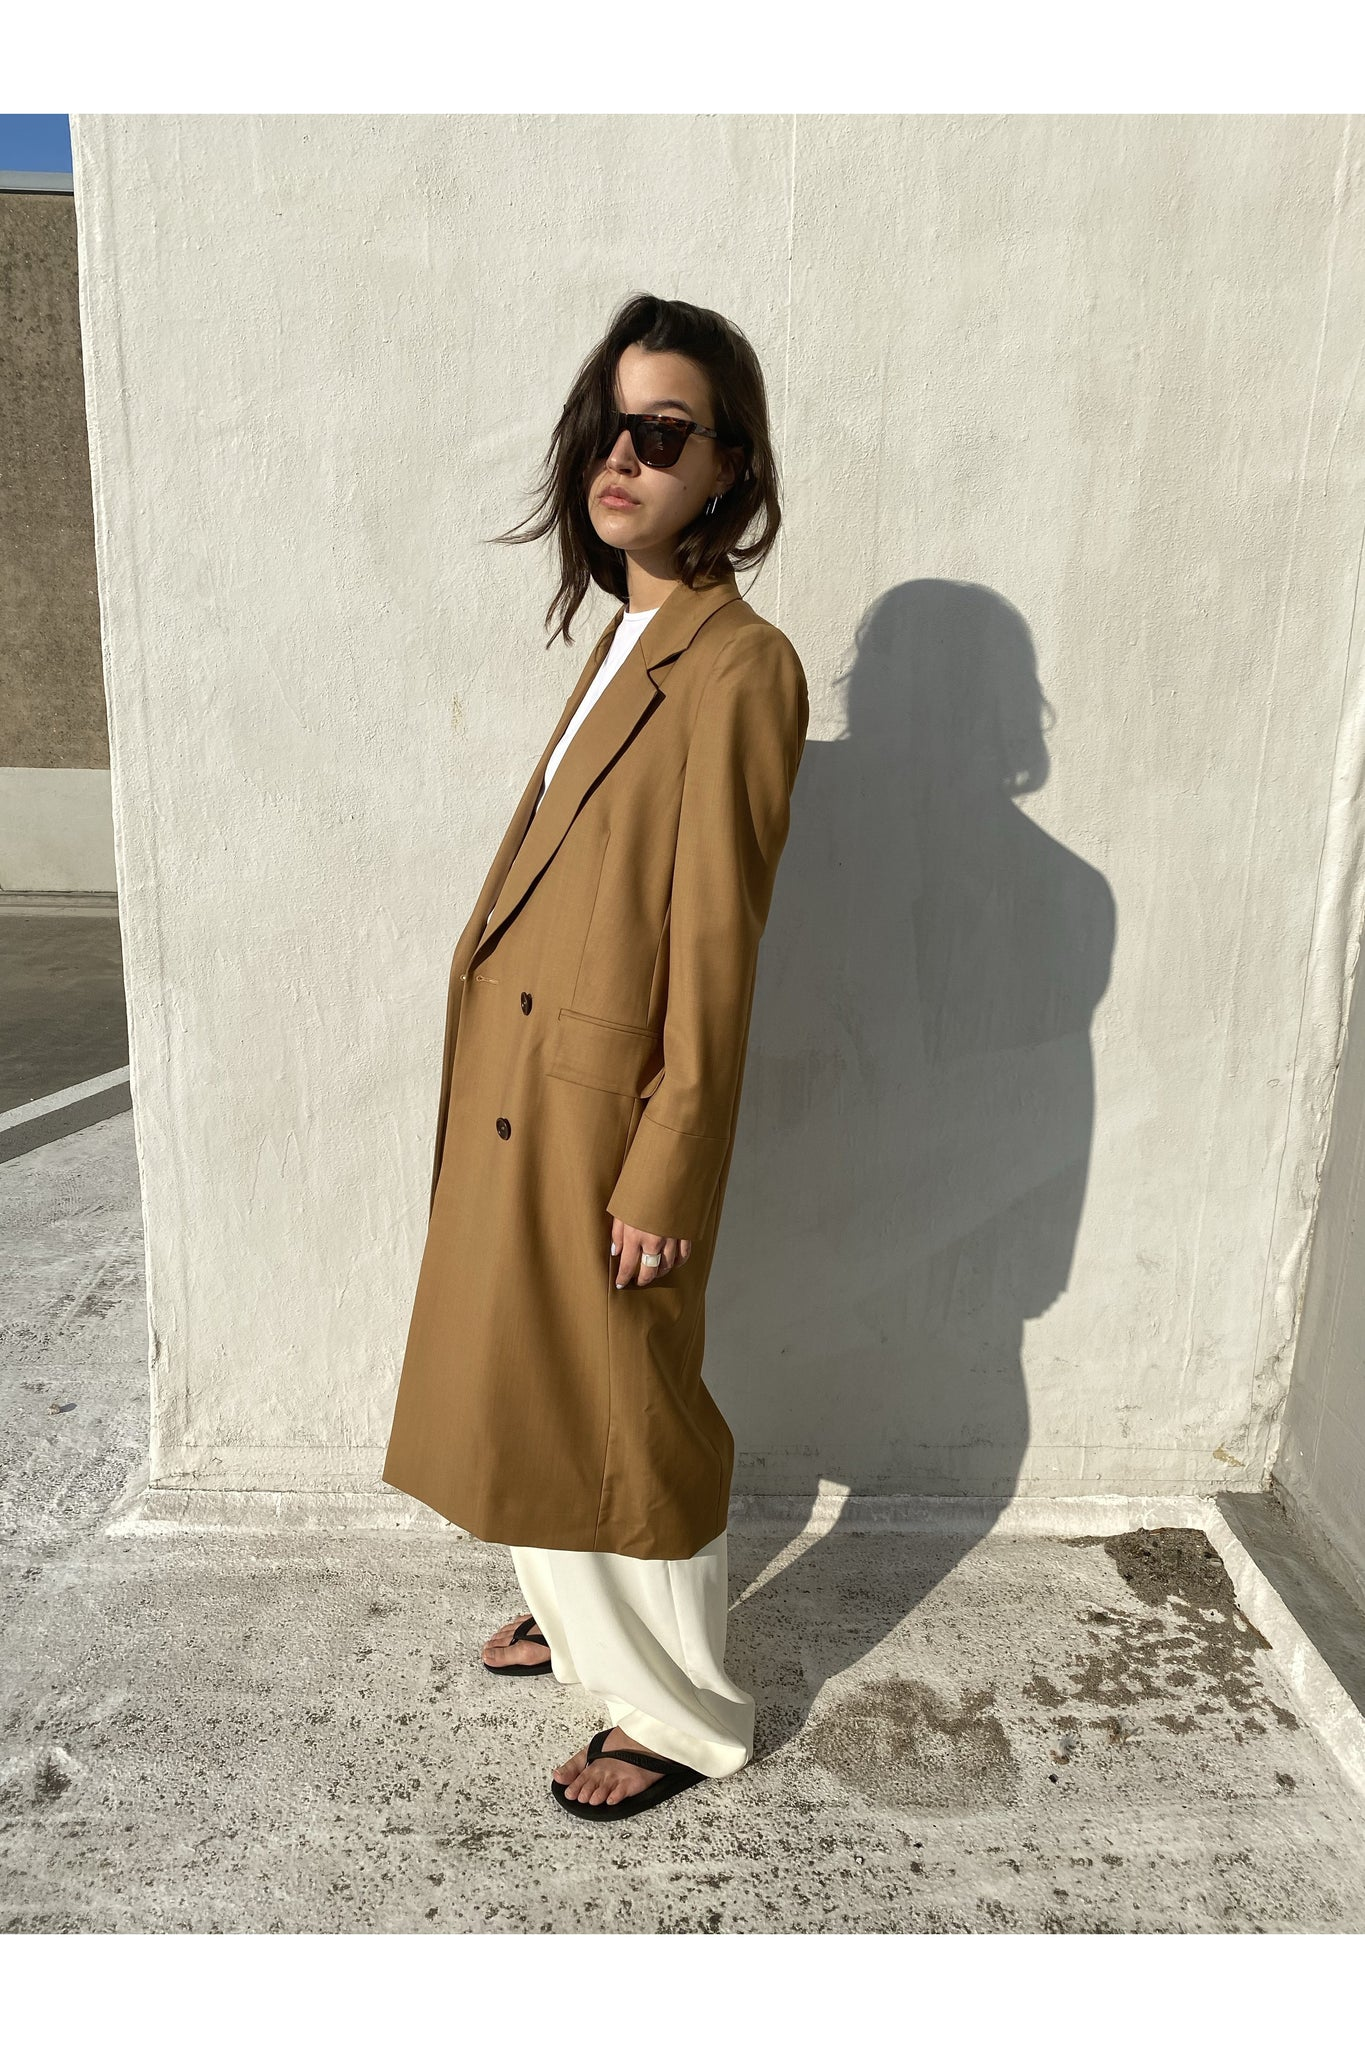 AUSTIN COAT IN CAMEL BY ENVELOPE - BEYOND STUDIOS